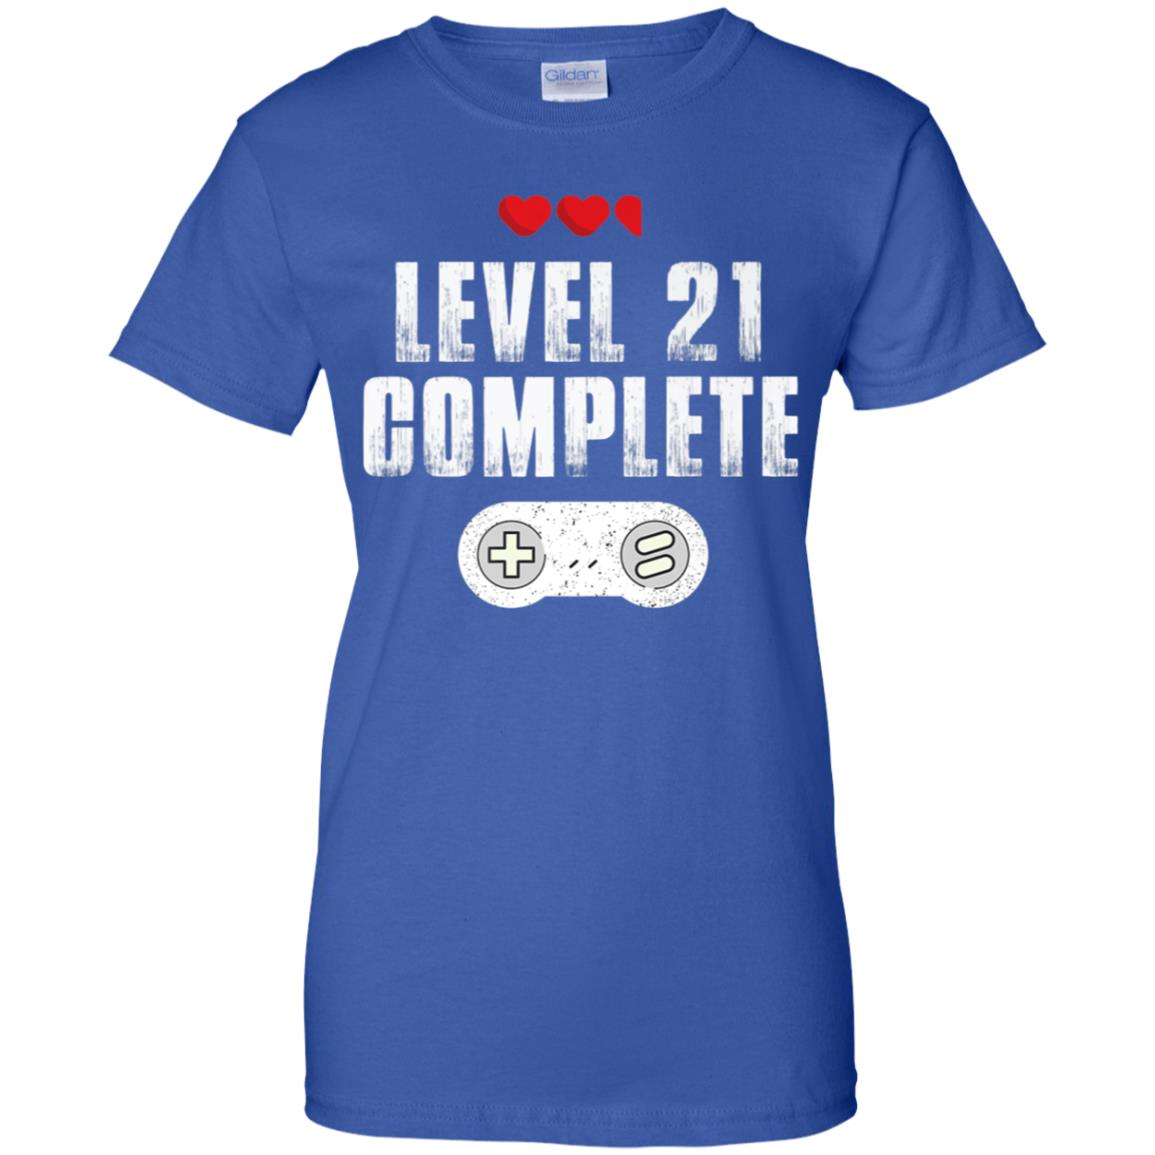 21st Birthday Gift Shirts For Him And Her Level 21 Complete